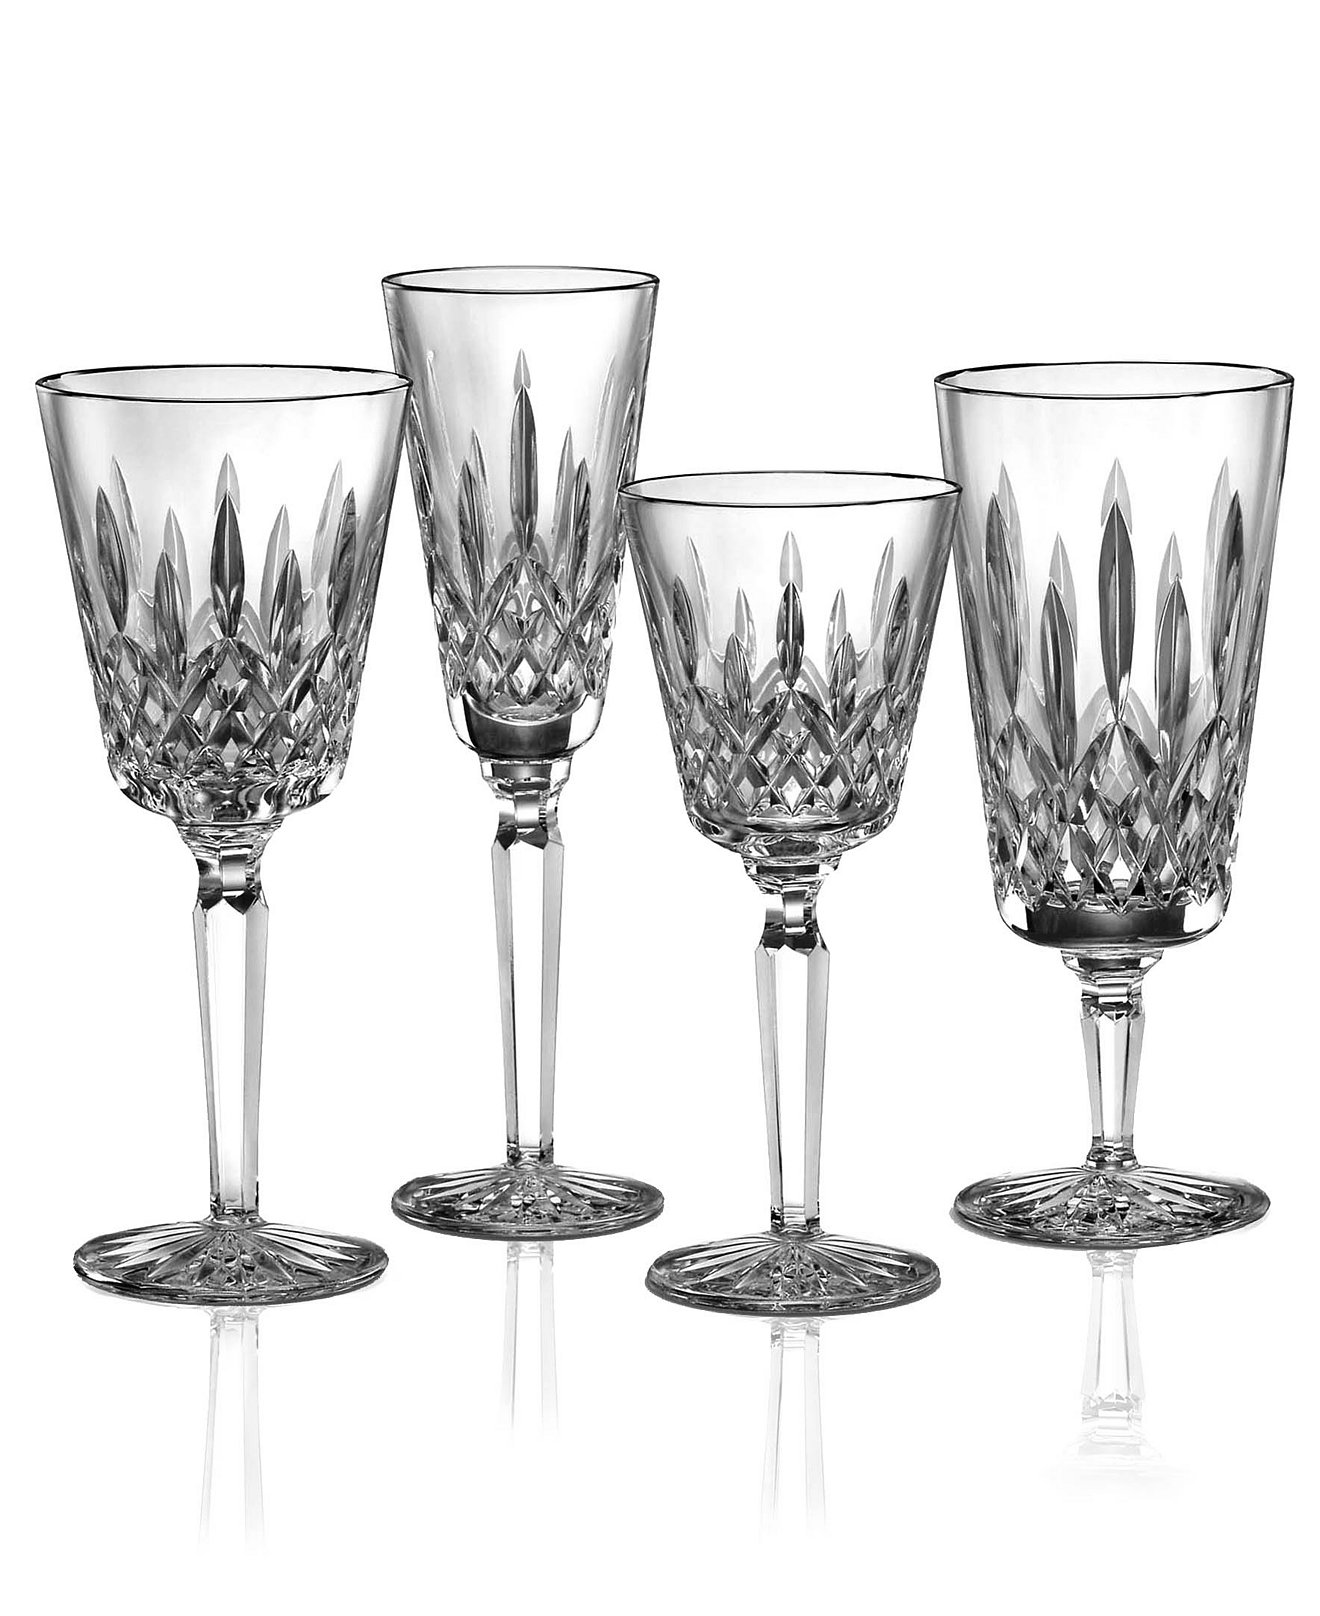 Breathtaking waterford lismore with lismore goblet design glass waterford lismore